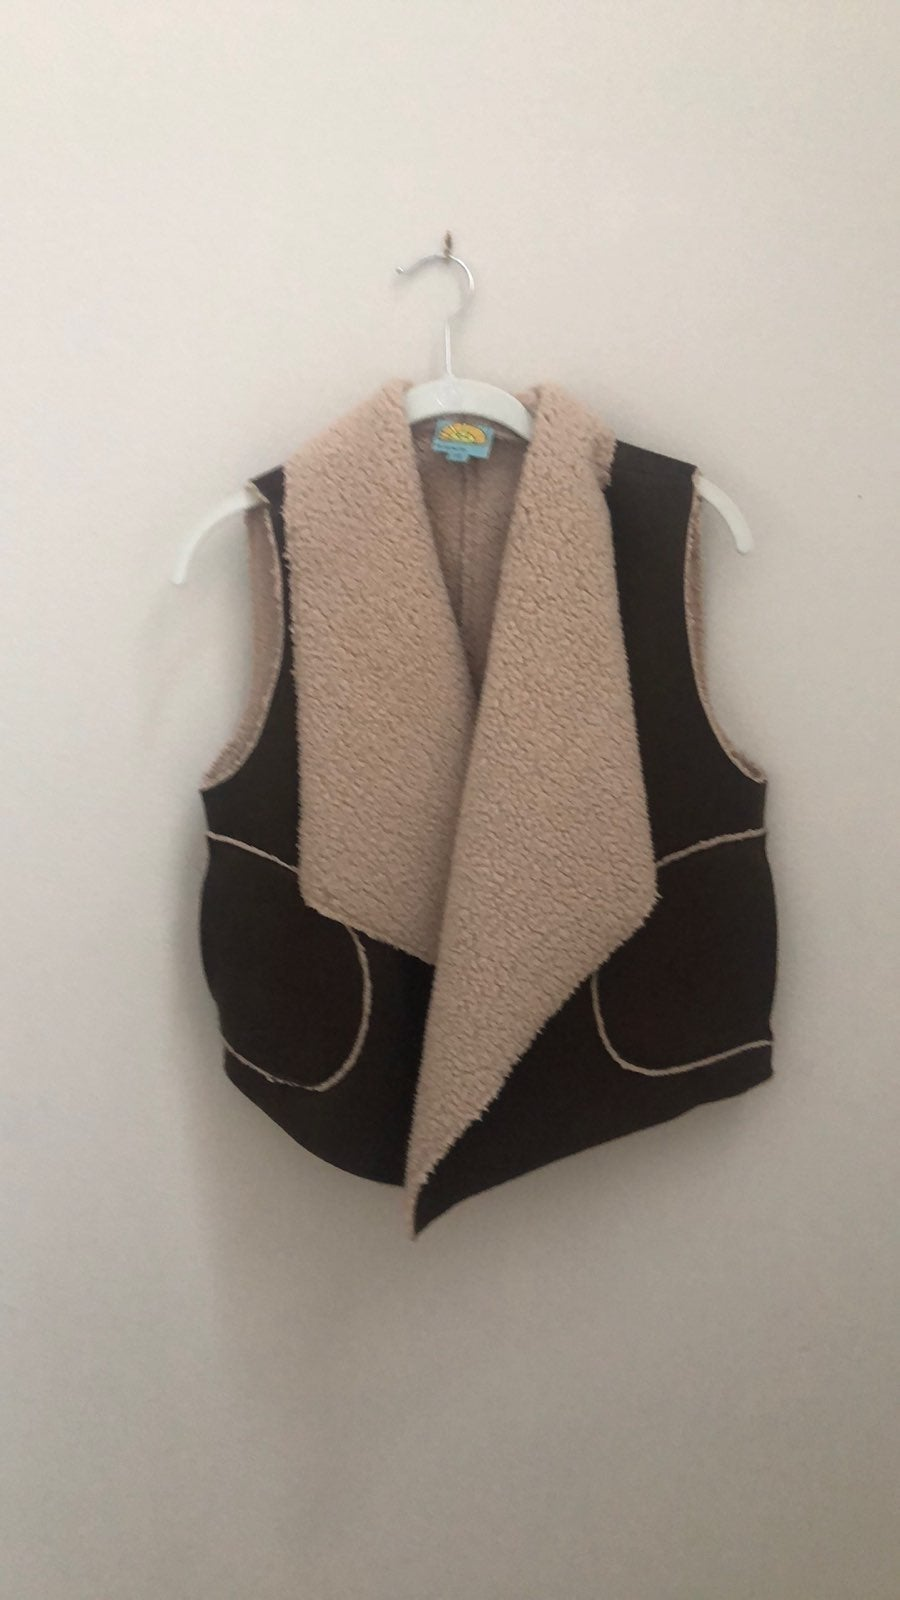 C&C California sherpa lined vest